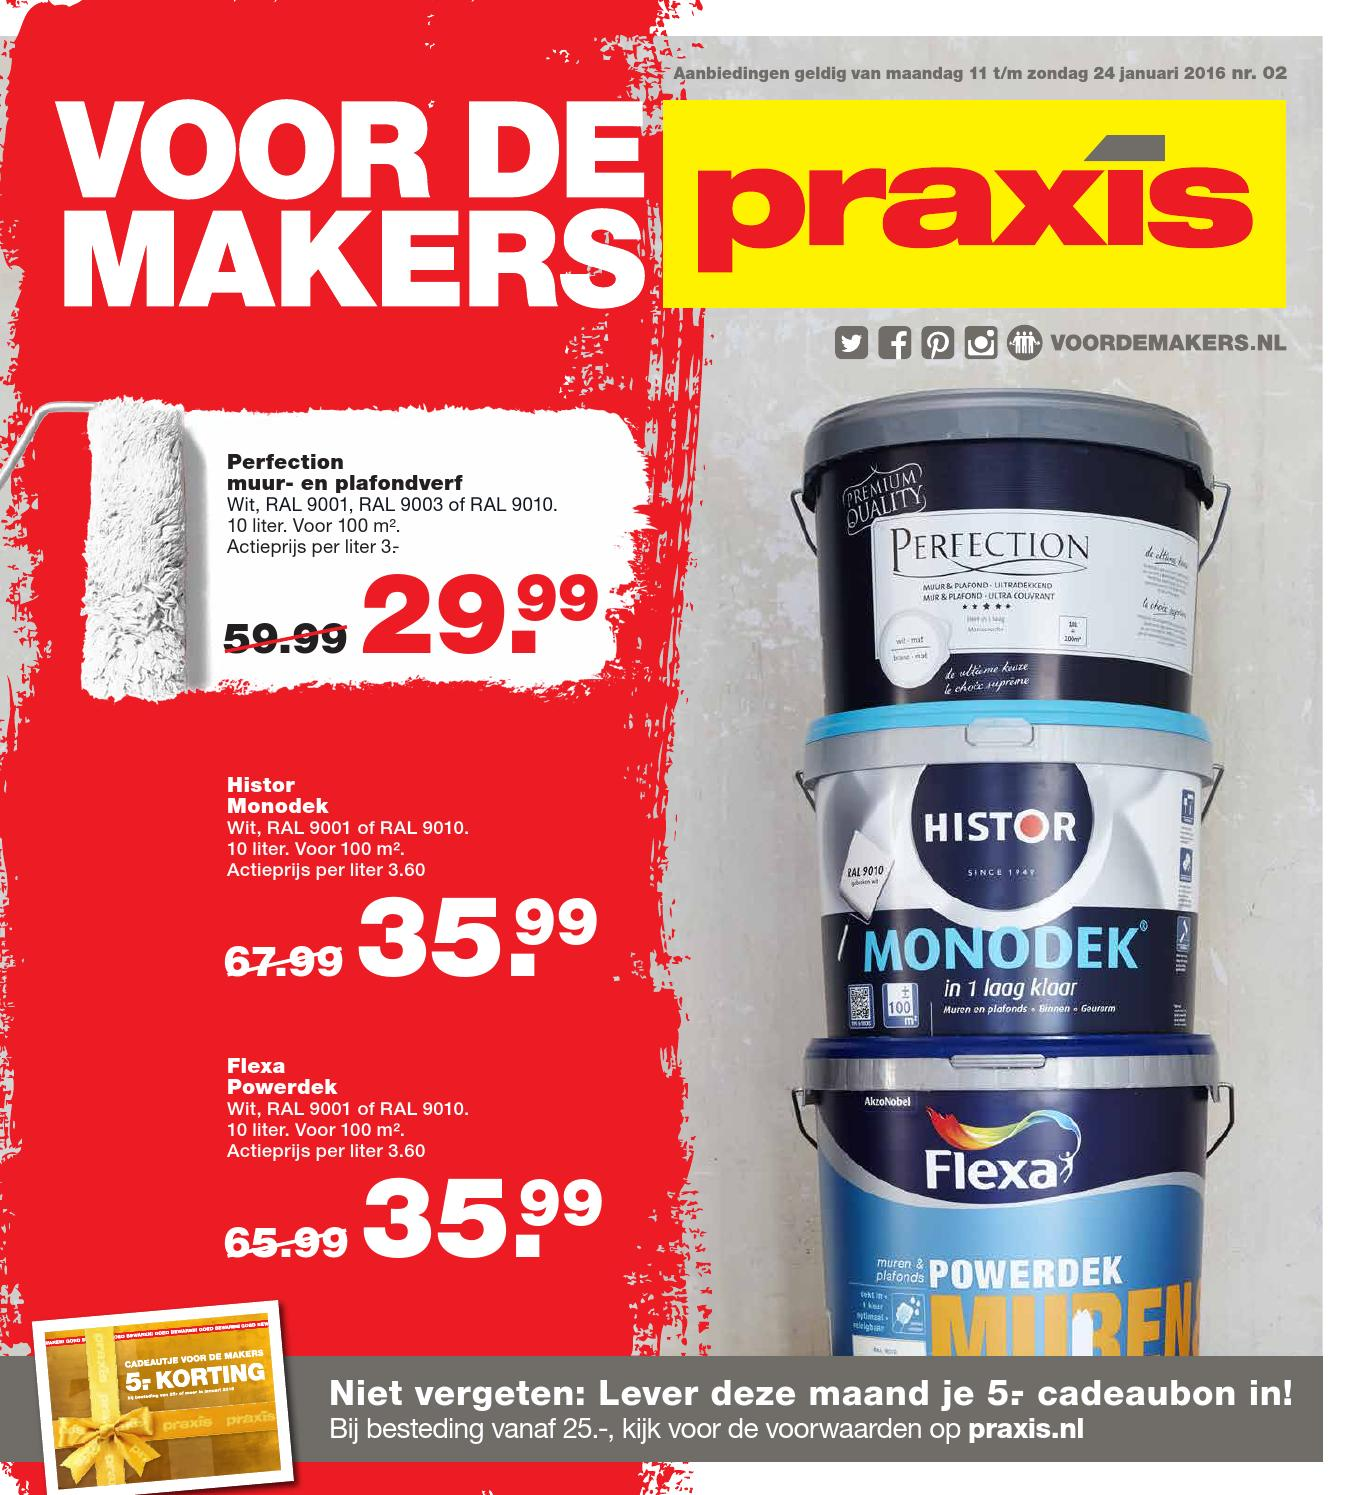 Flexa Strak In De Lak Aanbieding Praxis Praxis Folder Week 2 2016 By Online Folders Issuu